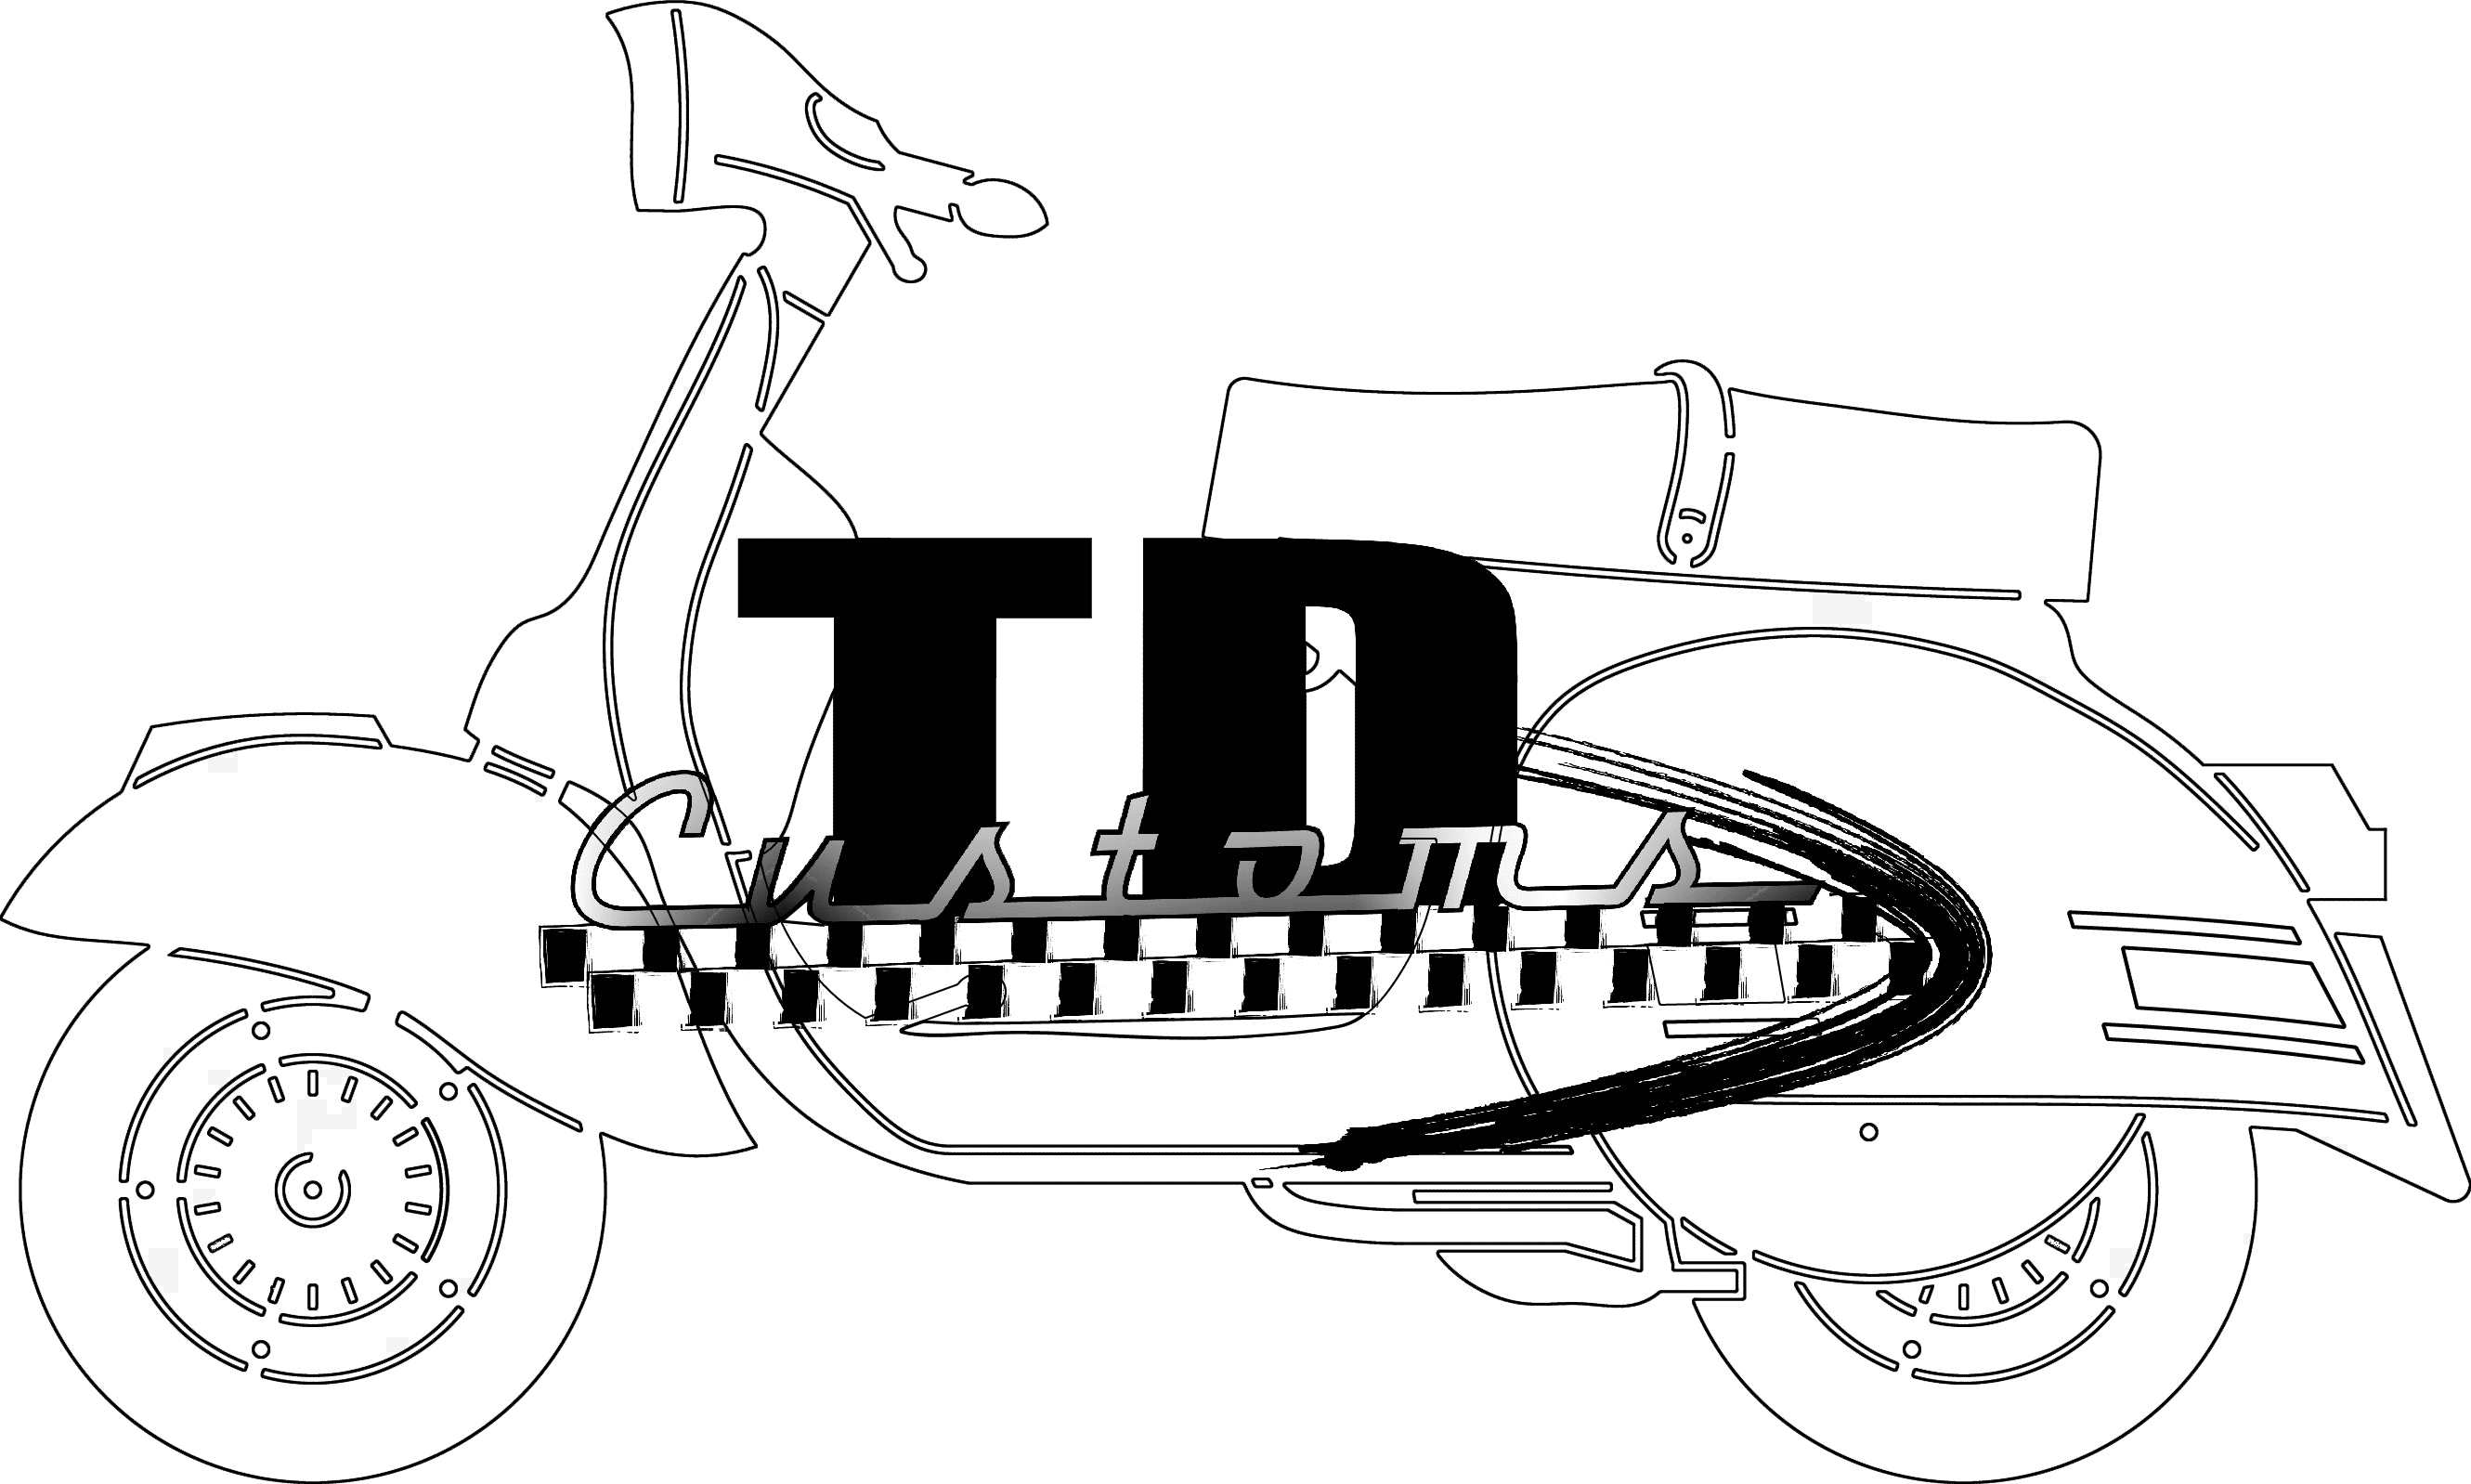 Scooter Clipart Scooter Lambretta Scooter Scooter